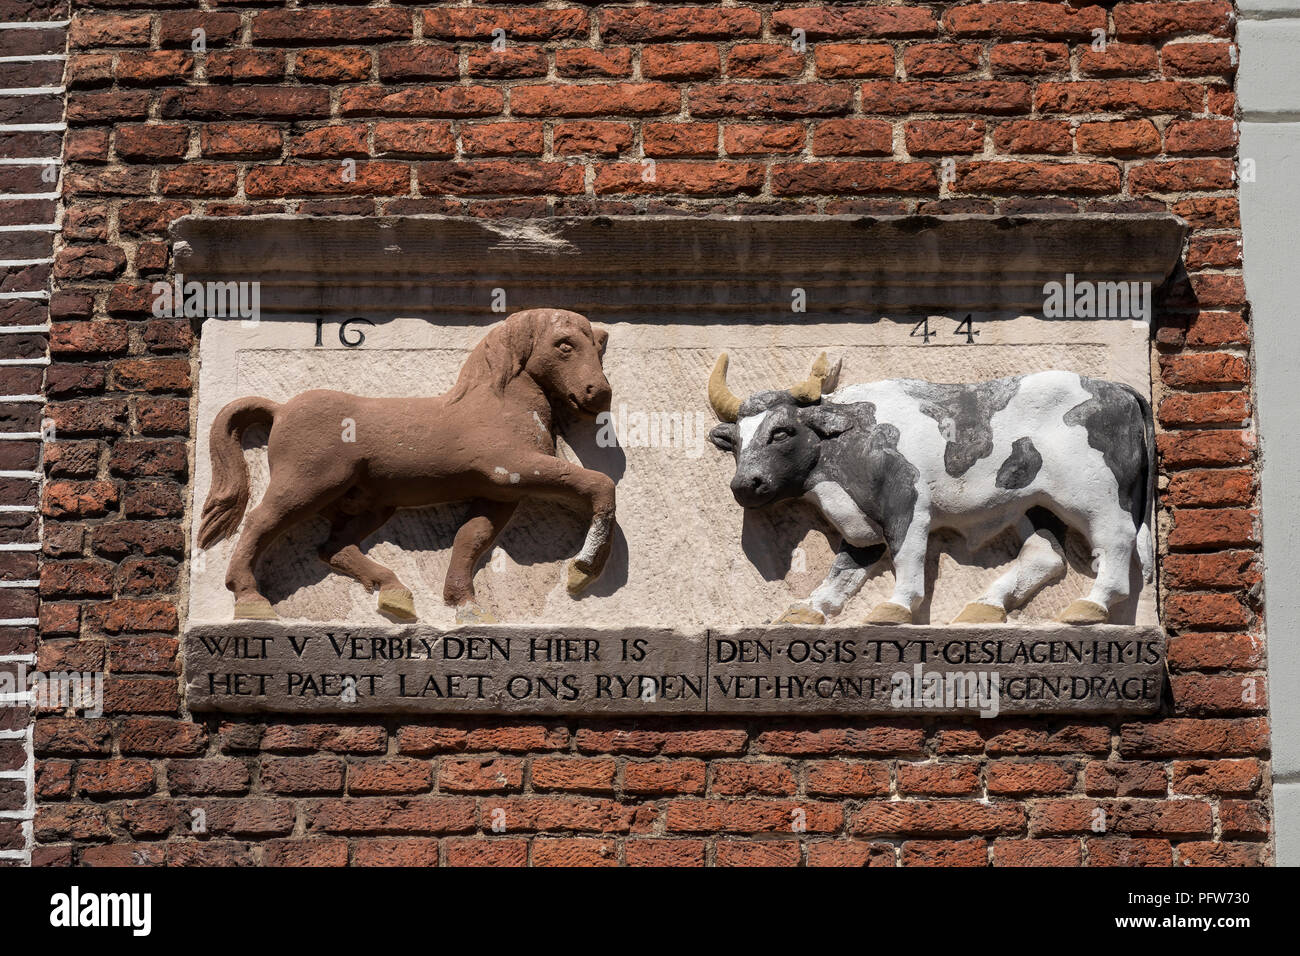 Leiden, Netherlands - August 3, 2018: Historical gable stone showing a horse and an ox, made in 1644 on a facade above a gate at the Stllle Rijn - Stock Image